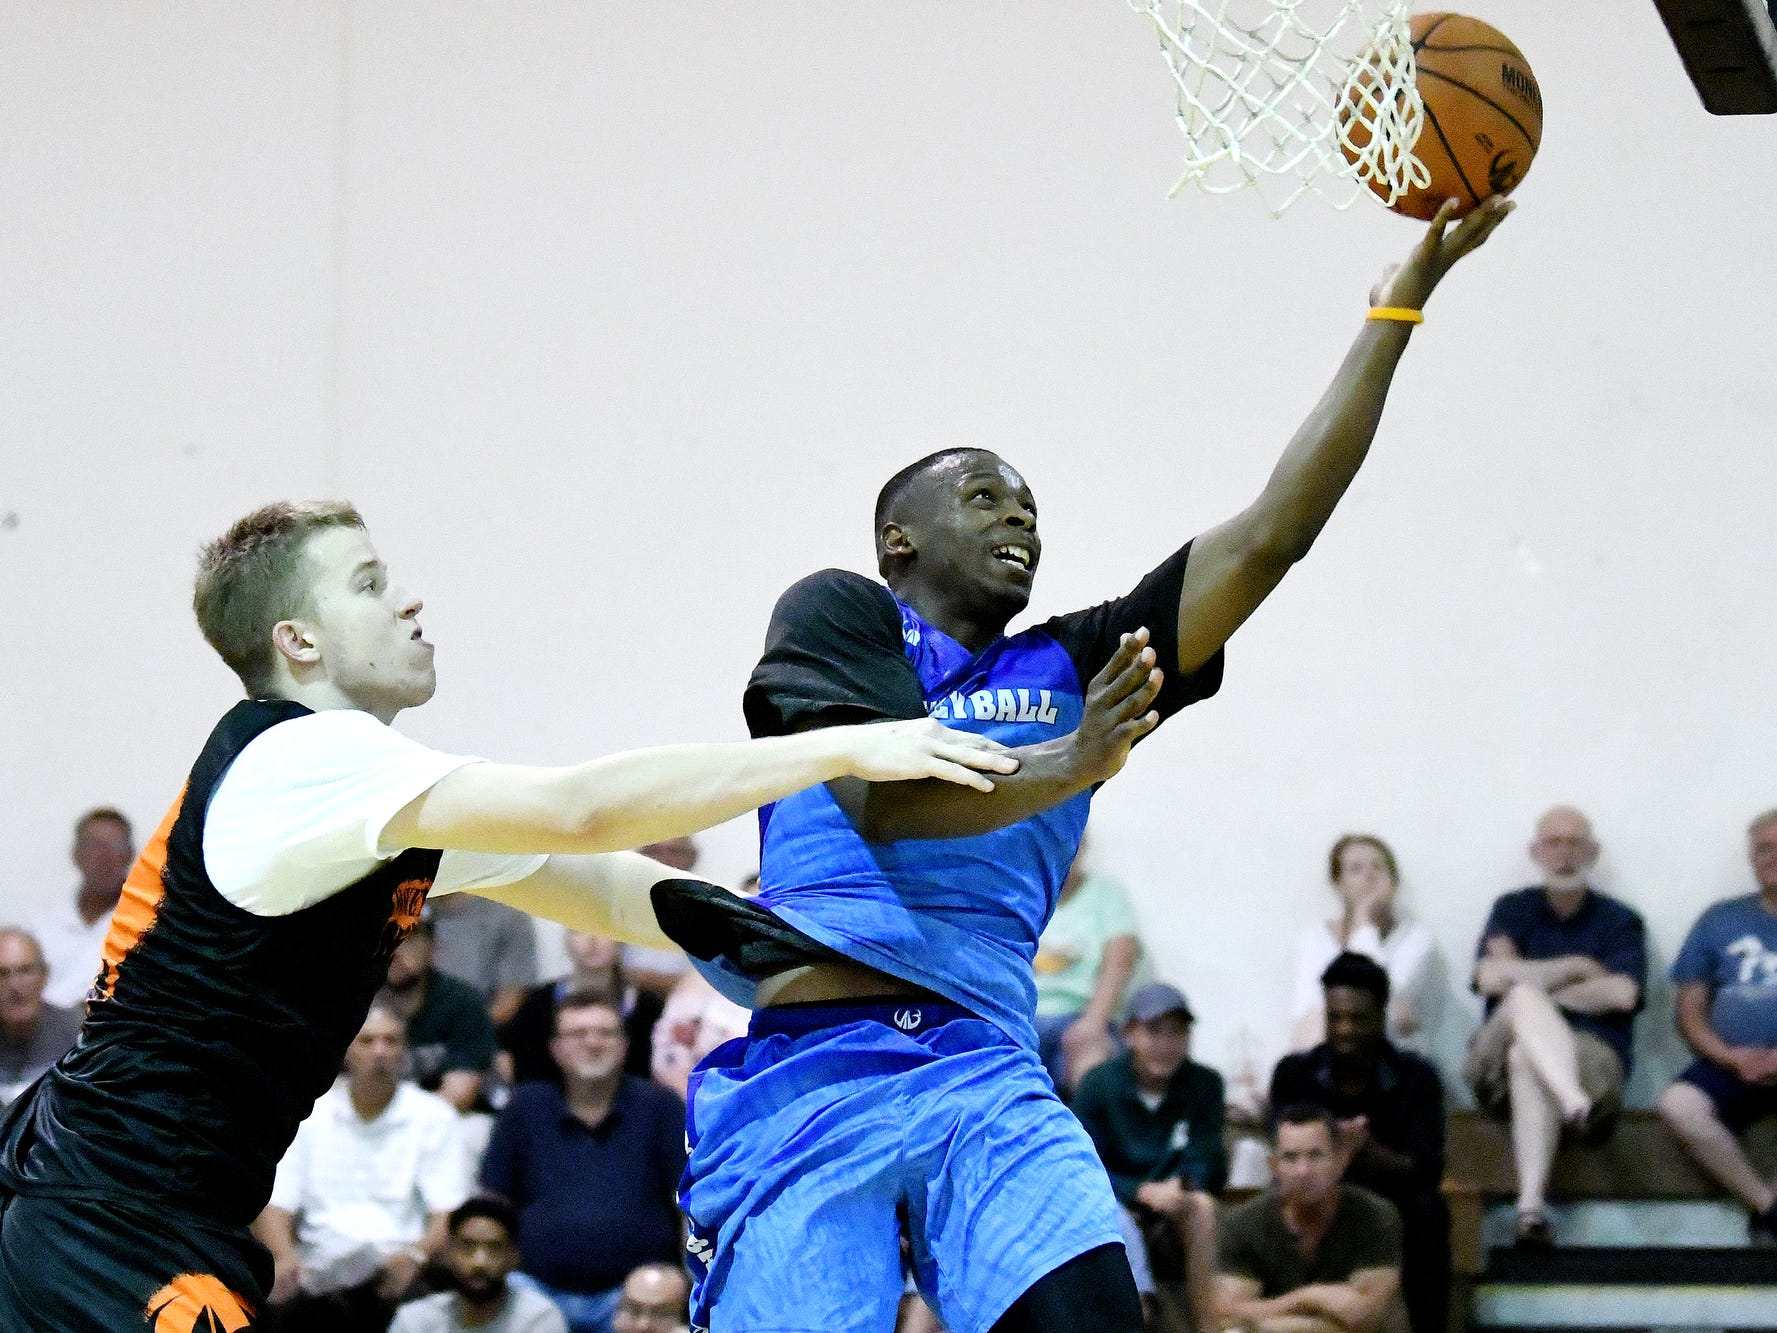 Team Definition's Clavontae Brown, right, is fouled by Team Splatter's Thomas Kithier on Thursday, Aug. 2, 2018, during the Moneyball Pro-Am summer basketball league championship game at Aim High in Dimondale. Team Definition won the game 99-83.